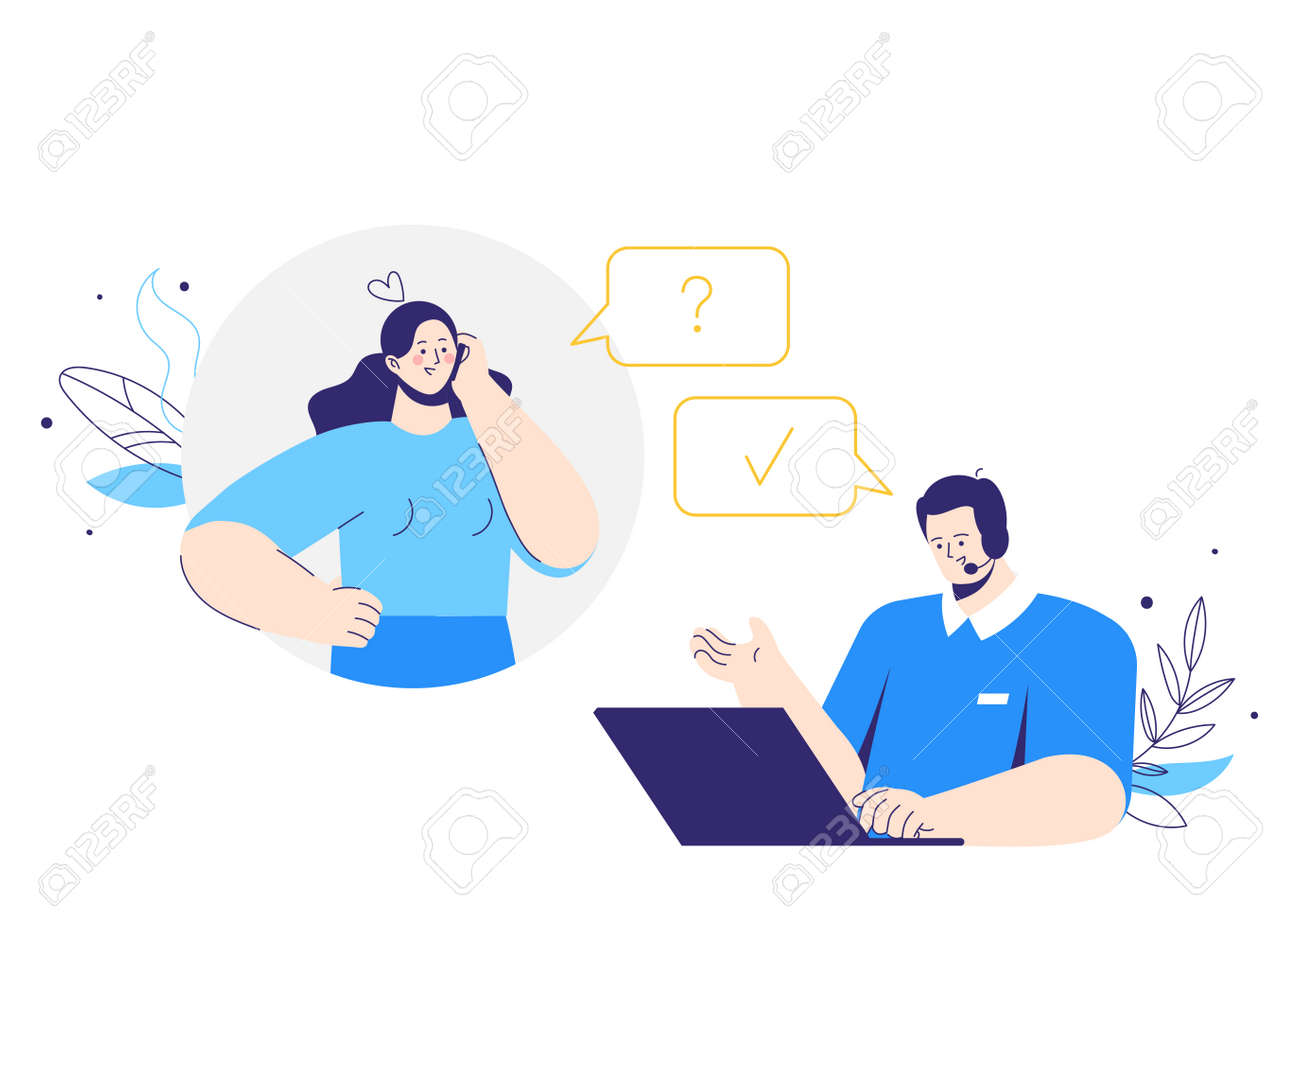 Client character call to customer service. Man operator with headphones and microphone with laptop. Woman asks a question. Technical support, assistance, call center concept. - 171852117